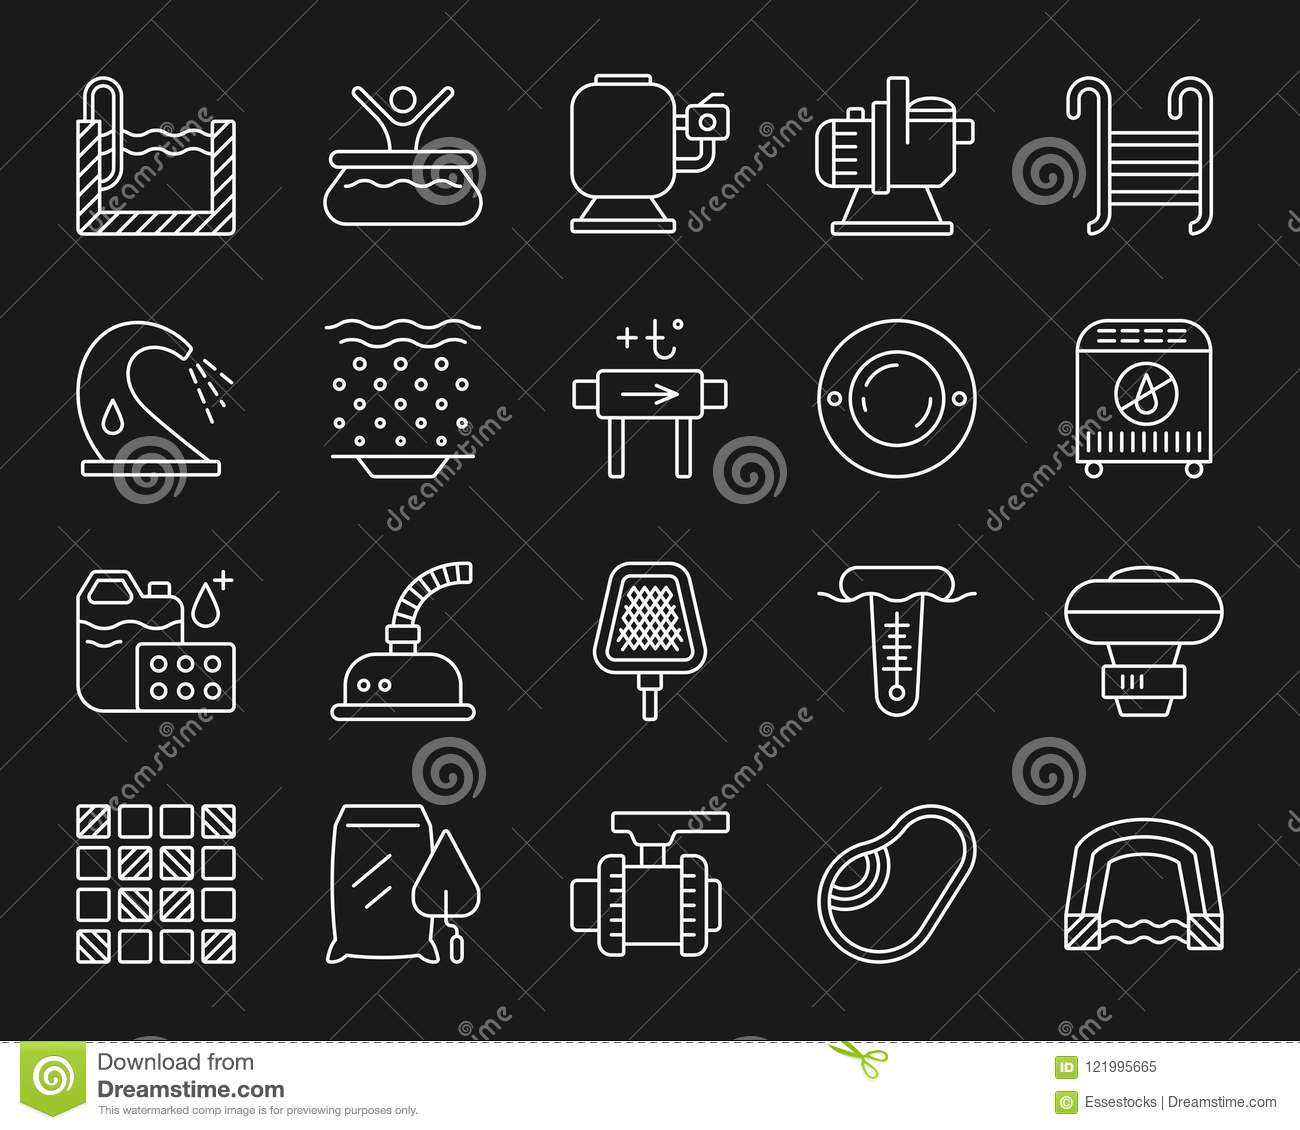 hight resolution of swimming pool equipment thin line icons set outline monochrome sign kit of construction repair linear icon collection includes tile mosaic waterproofing